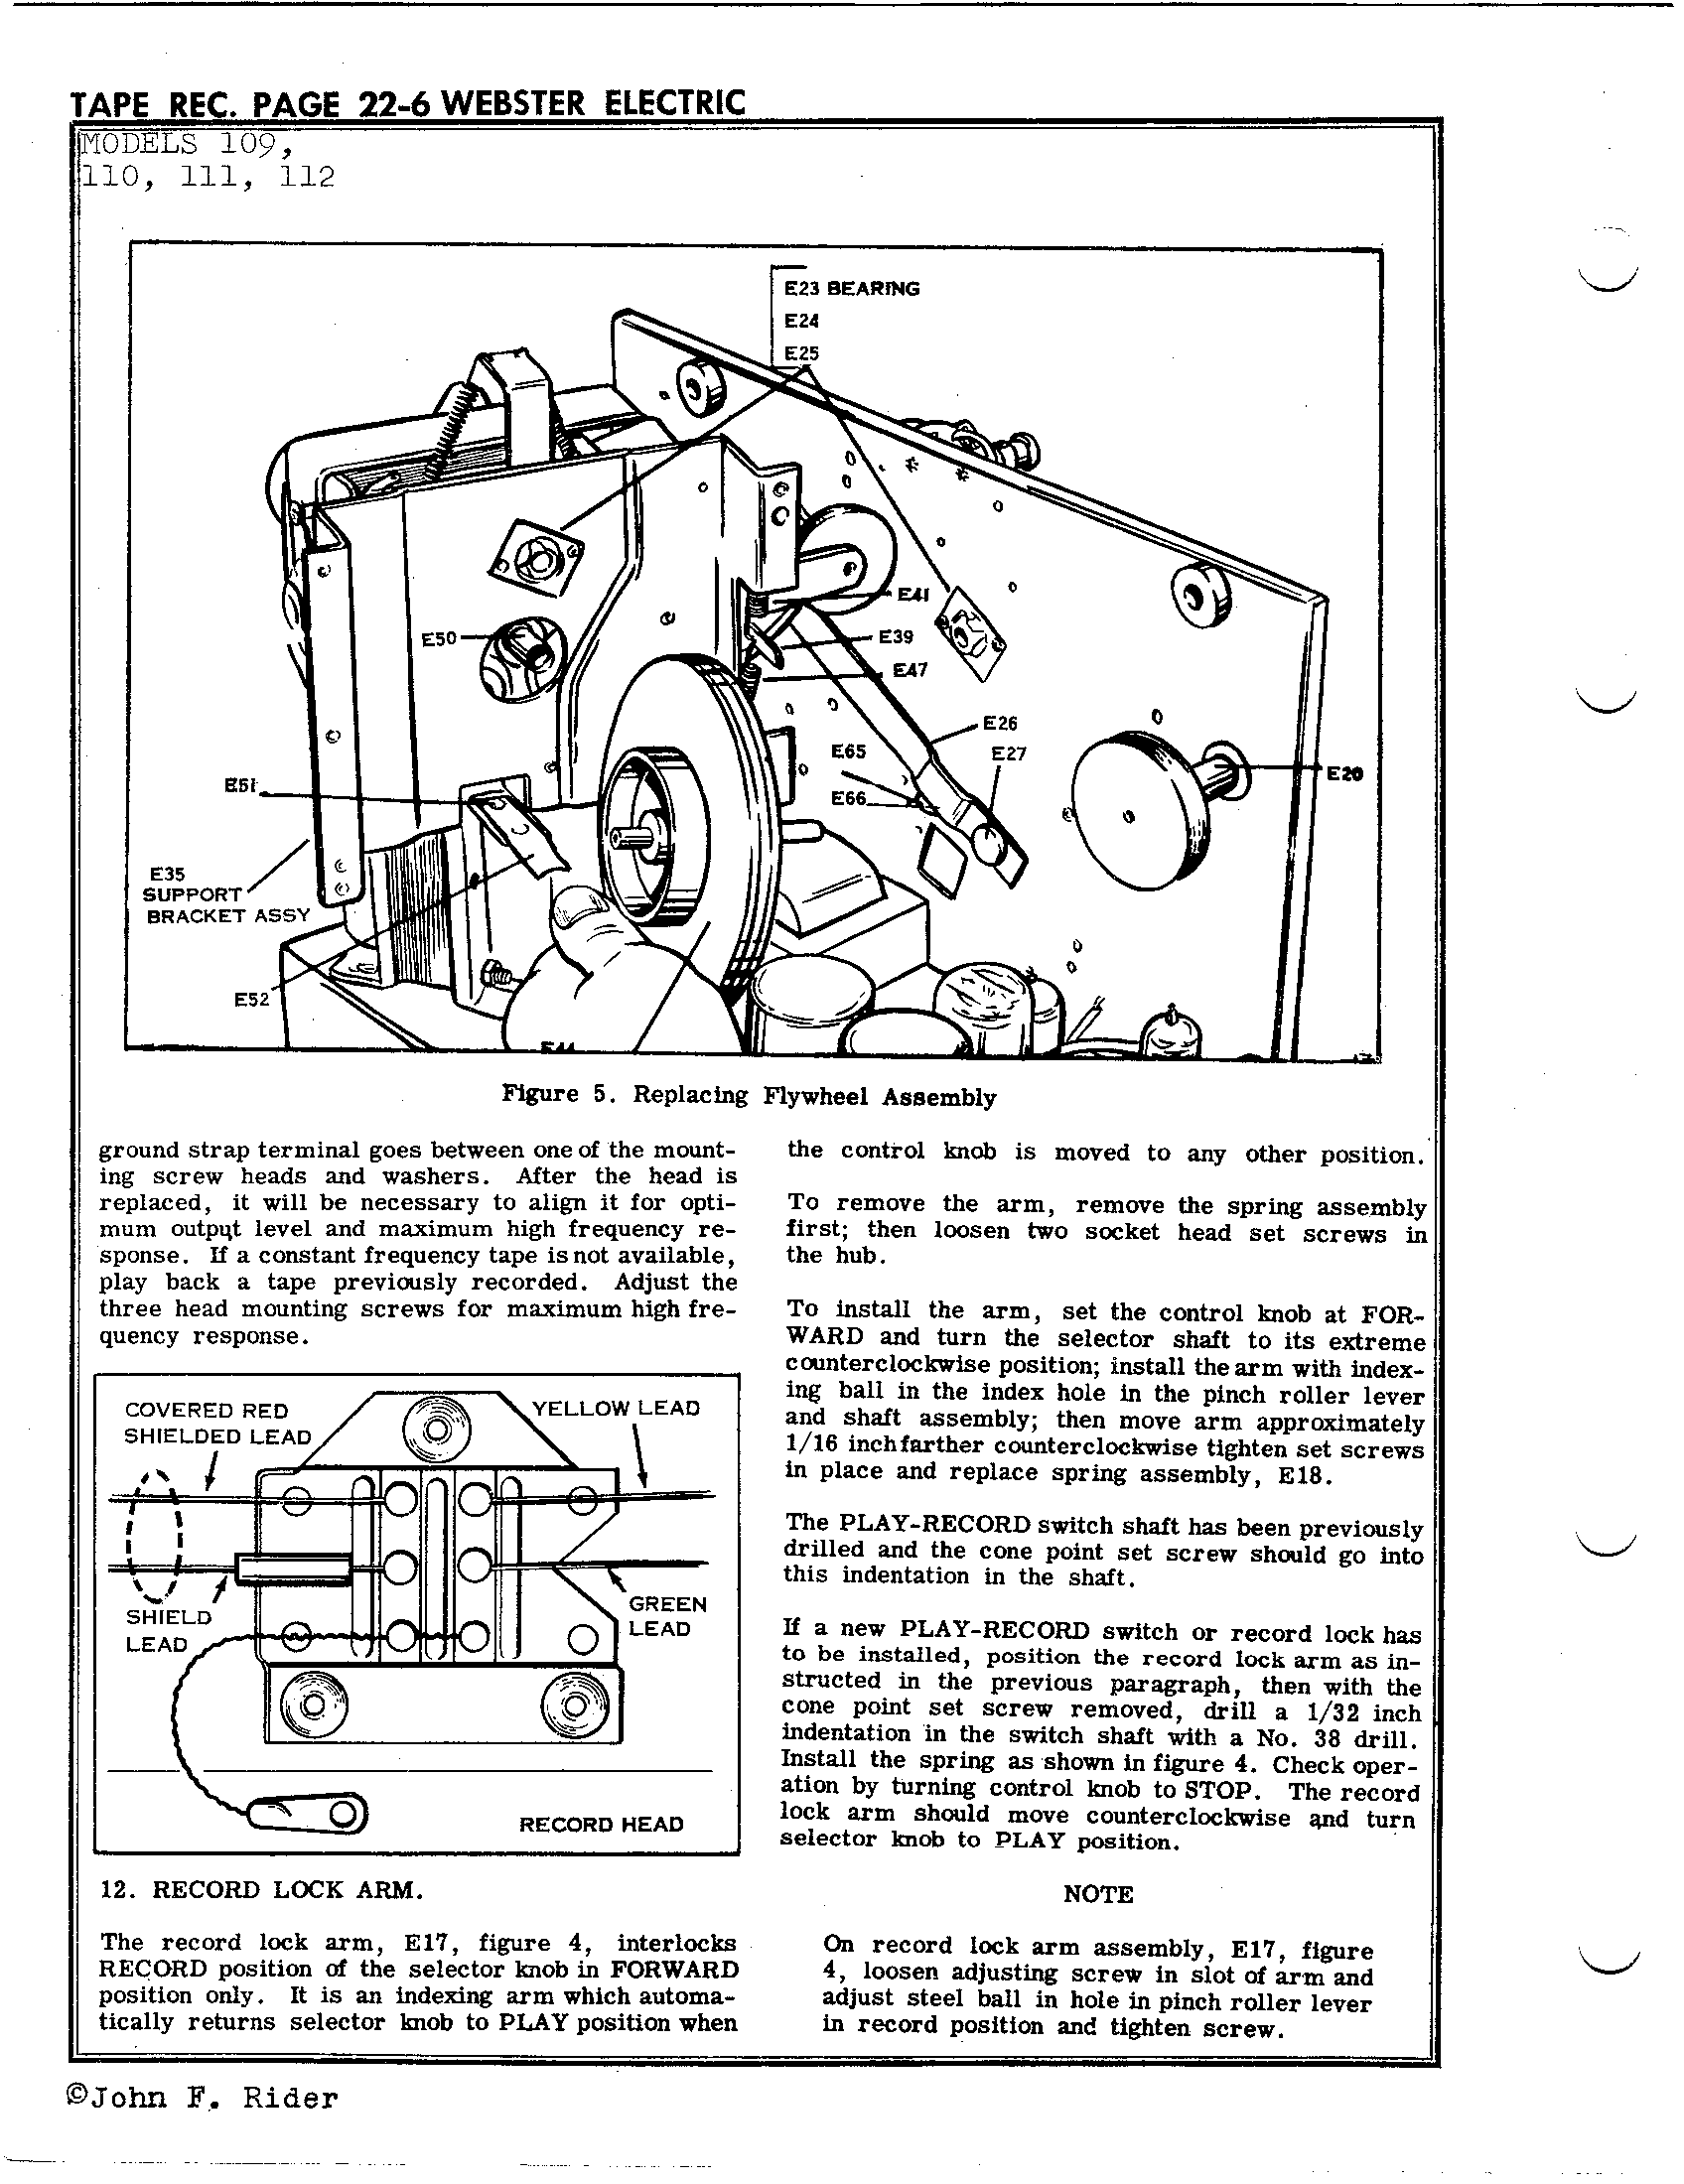 Webster Electrical Corp 111